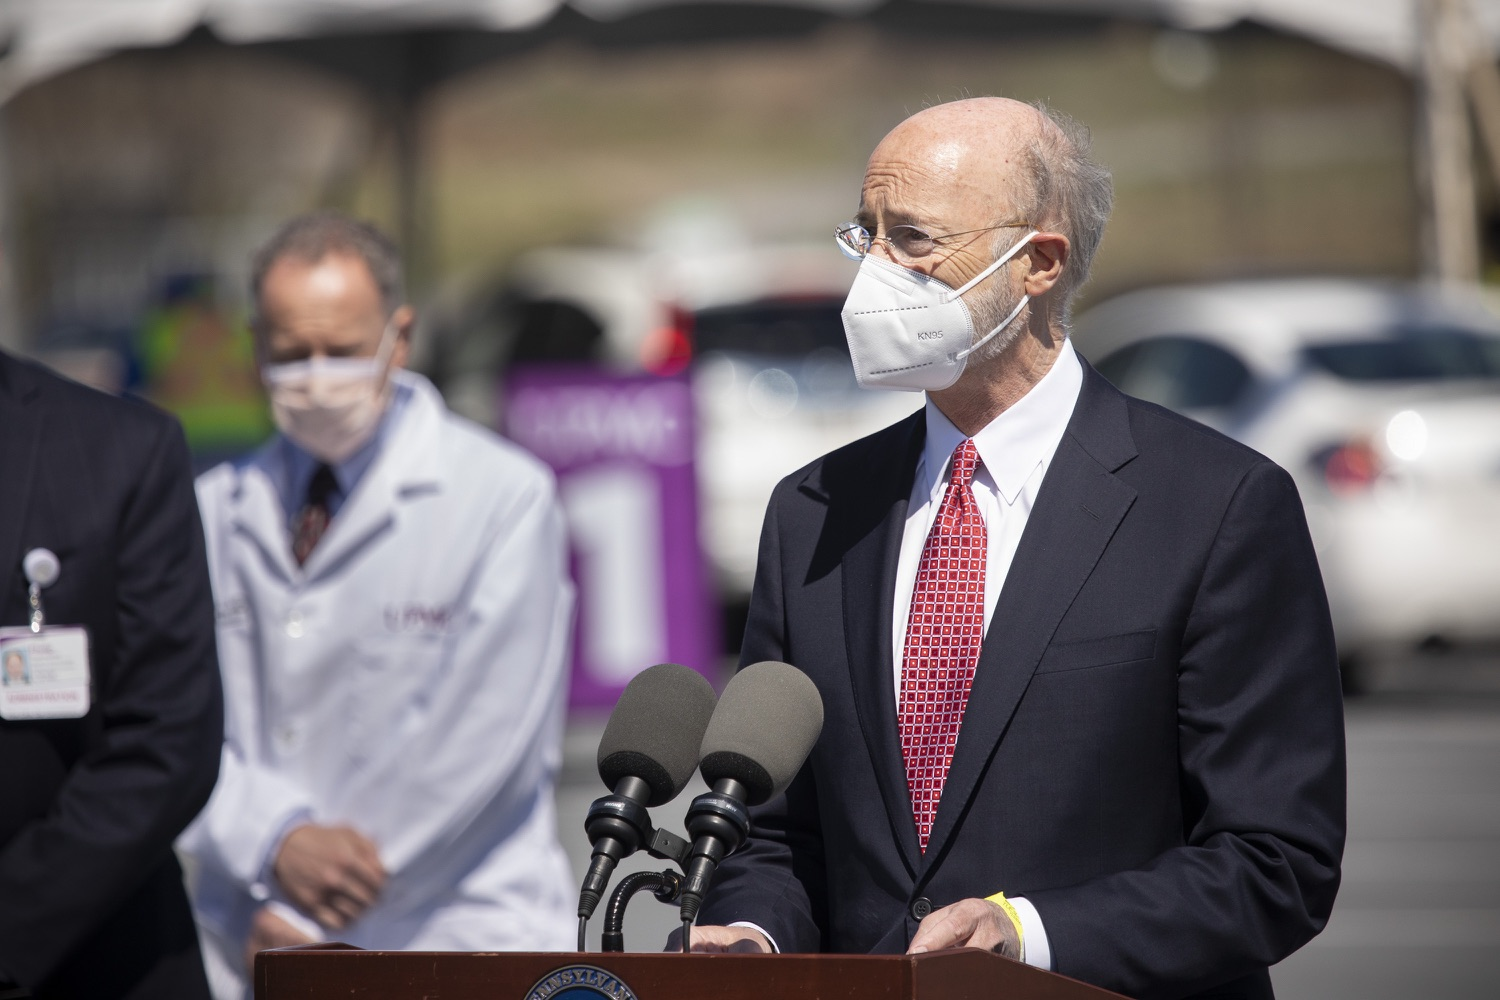 """<a href=""""https://filesource.wostreaming.net/commonwealthofpa/photo/18631_gov_hacc_vaccine_dz_009.jpg"""" target=""""_blank"""">⇣Download Photo<br></a>Pennsylvania Governor Tom Wolf speaking with the press.  Governor Wolf today visited the COVID-19 drive-thru mass vaccination clinic for Dauphin County residents at Harrisburg Area Community College. The drive-thru clinic was developed in partnership with UPMC Pinnacle and Dauphin County. He was joined by UPMC Pinnacle President Phil Guarneschelli and Dauphin County Commissioners Mike Pries and George P. Hartwick III.  HARRISBURG, PA -- March 30, 2021"""